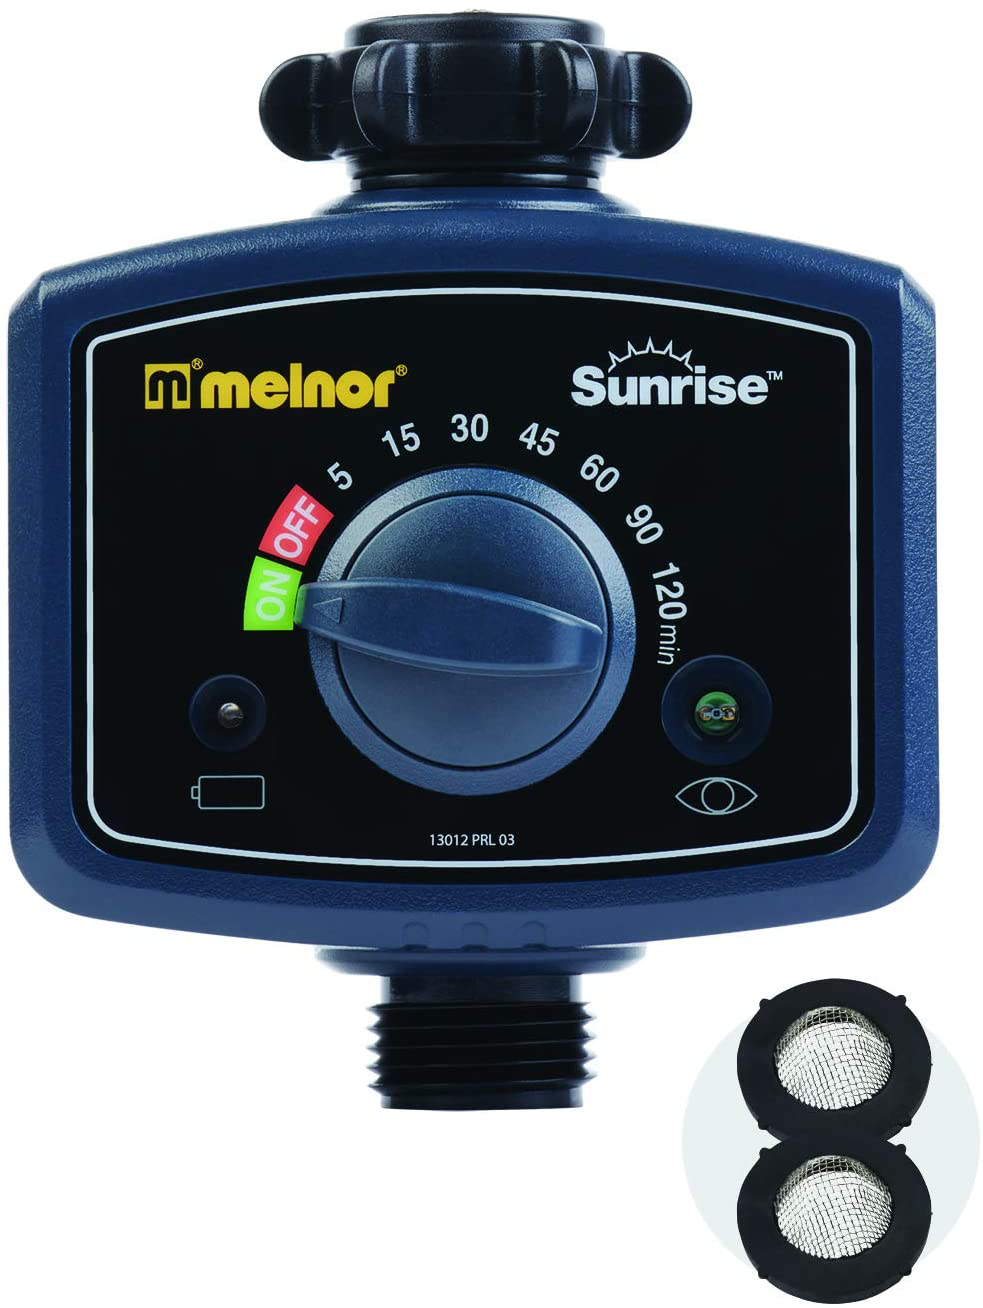 Melnor 65073-AMZ Sunrise Once-A-Day Automatic Water Timer with 2 Filter Washers